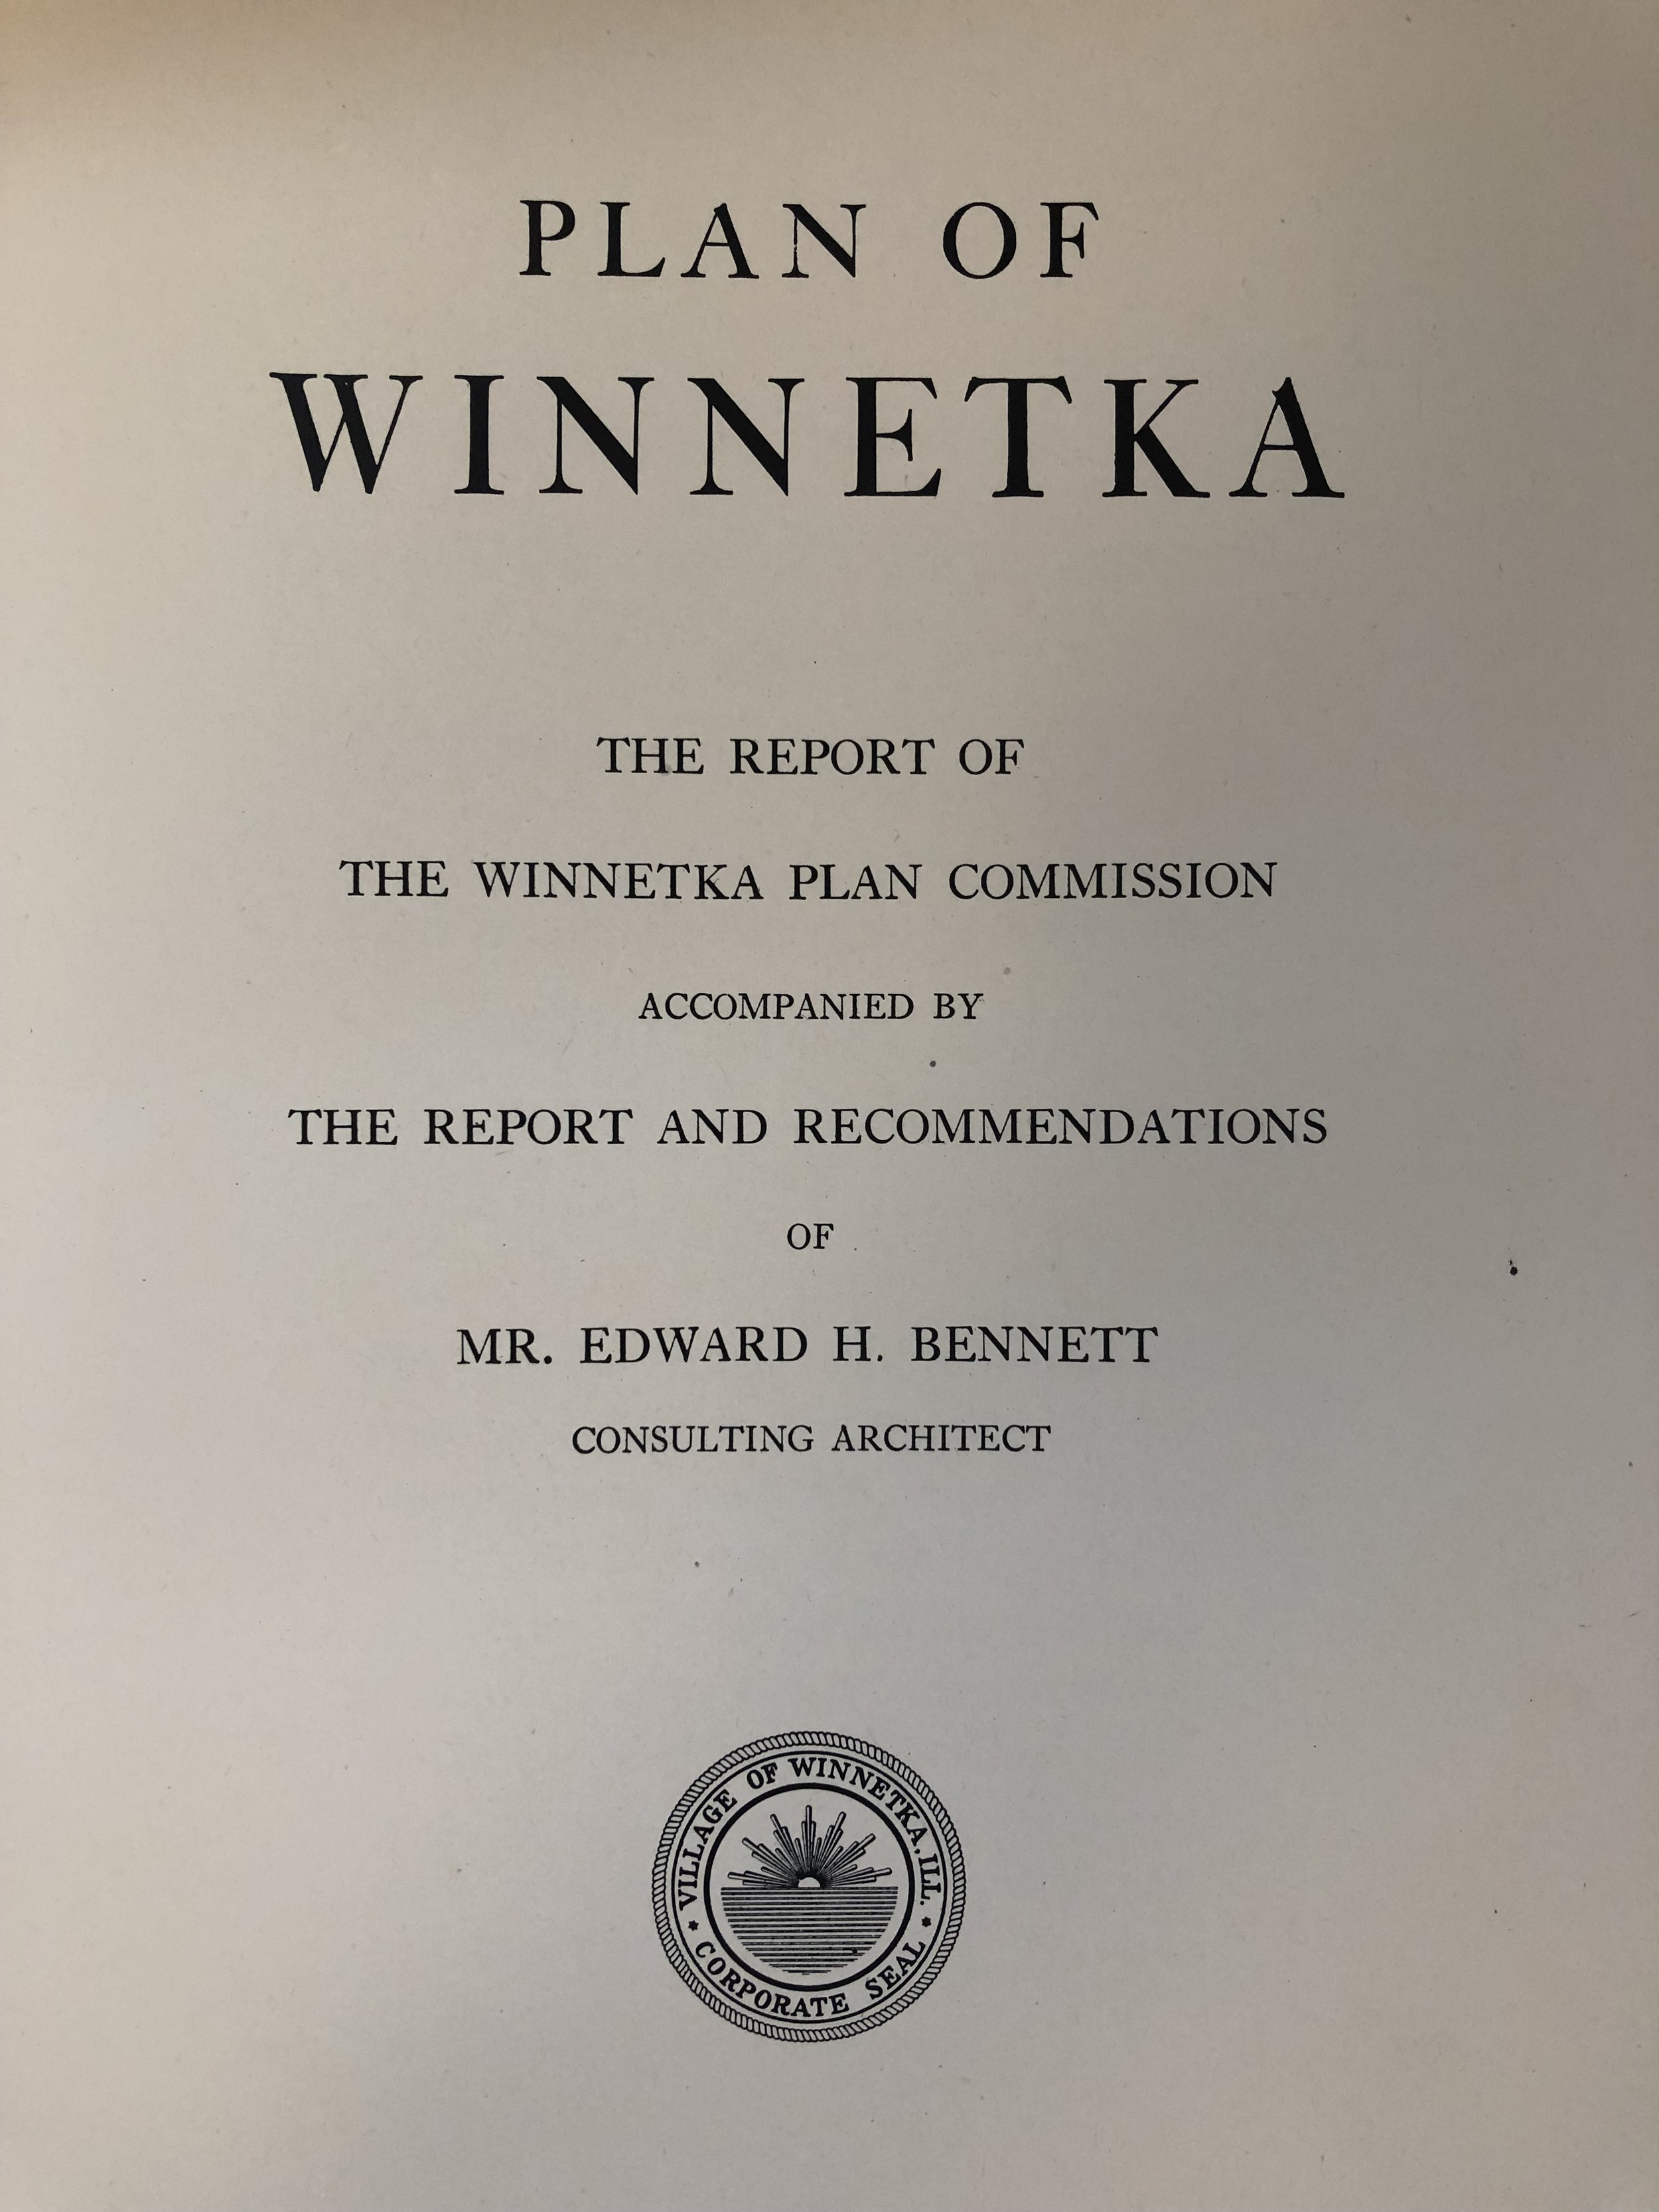 1921 - Plan of Winnetka is adopted to guide community growth - The 1921 Plan of Winnetka showed extreme foresight in urban planning by calling for preservation of green space, the creation for a Village Center and recommending the railroad tracks be placed below grade. Because of its recommendations our community enjoys aesthetic beauty and freedom from the traffic and safety problems caused by railroad crossings.